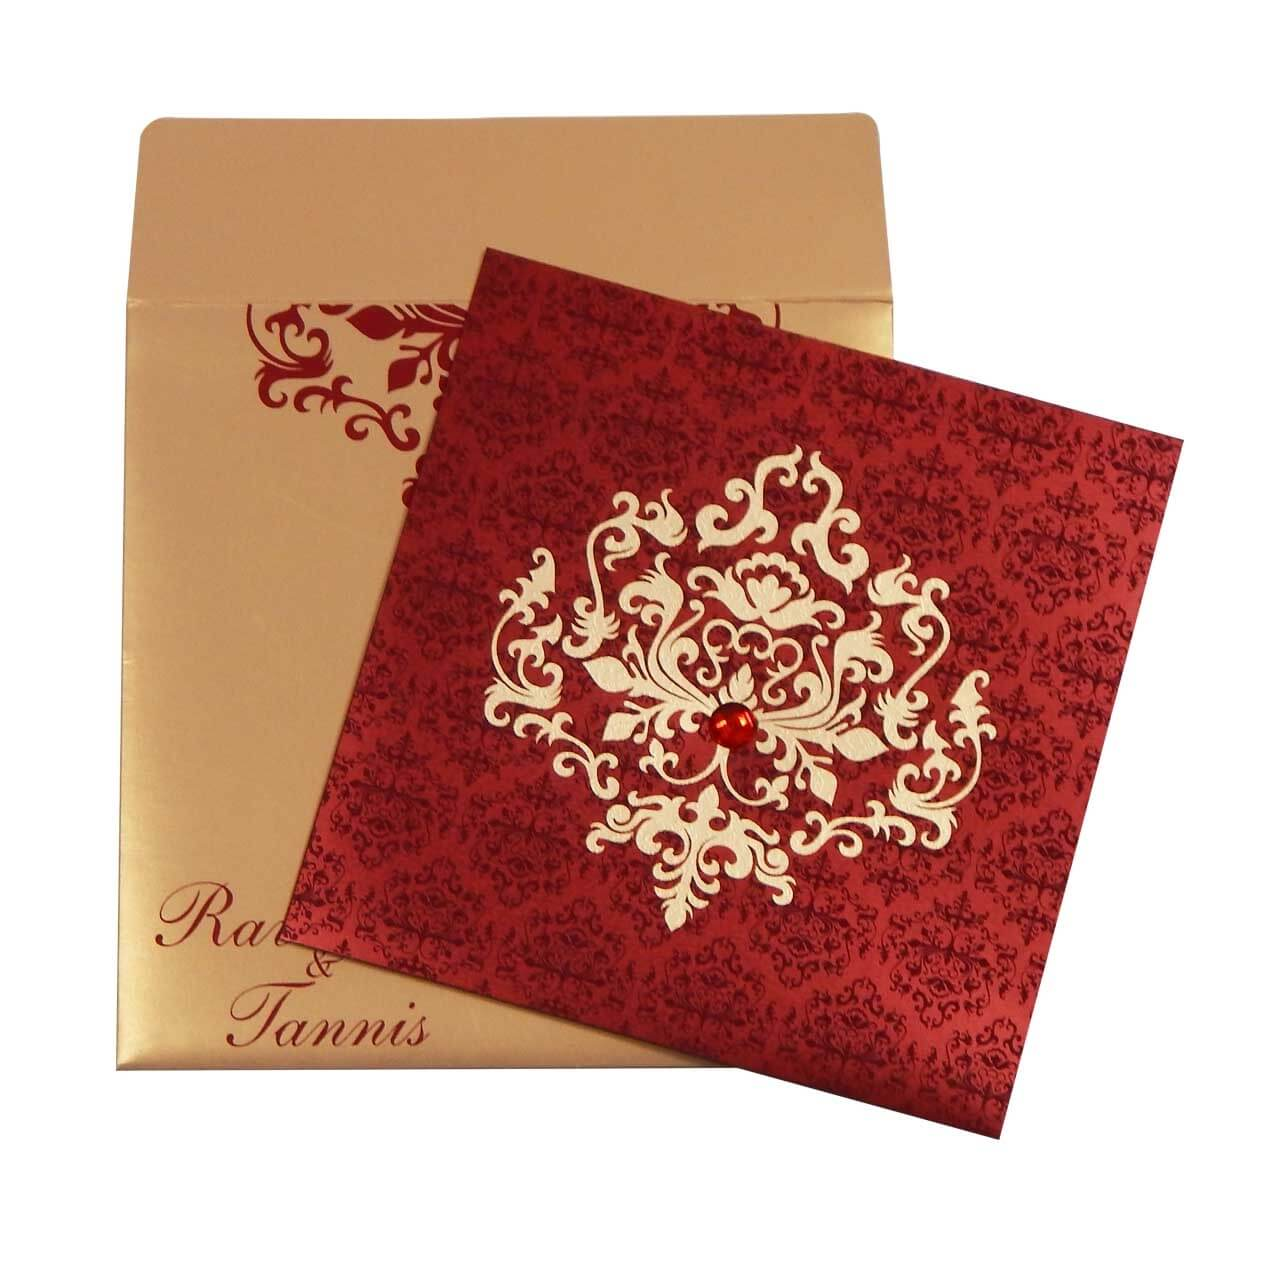 SIKH WEDDING CARDS T3-1088 Full View